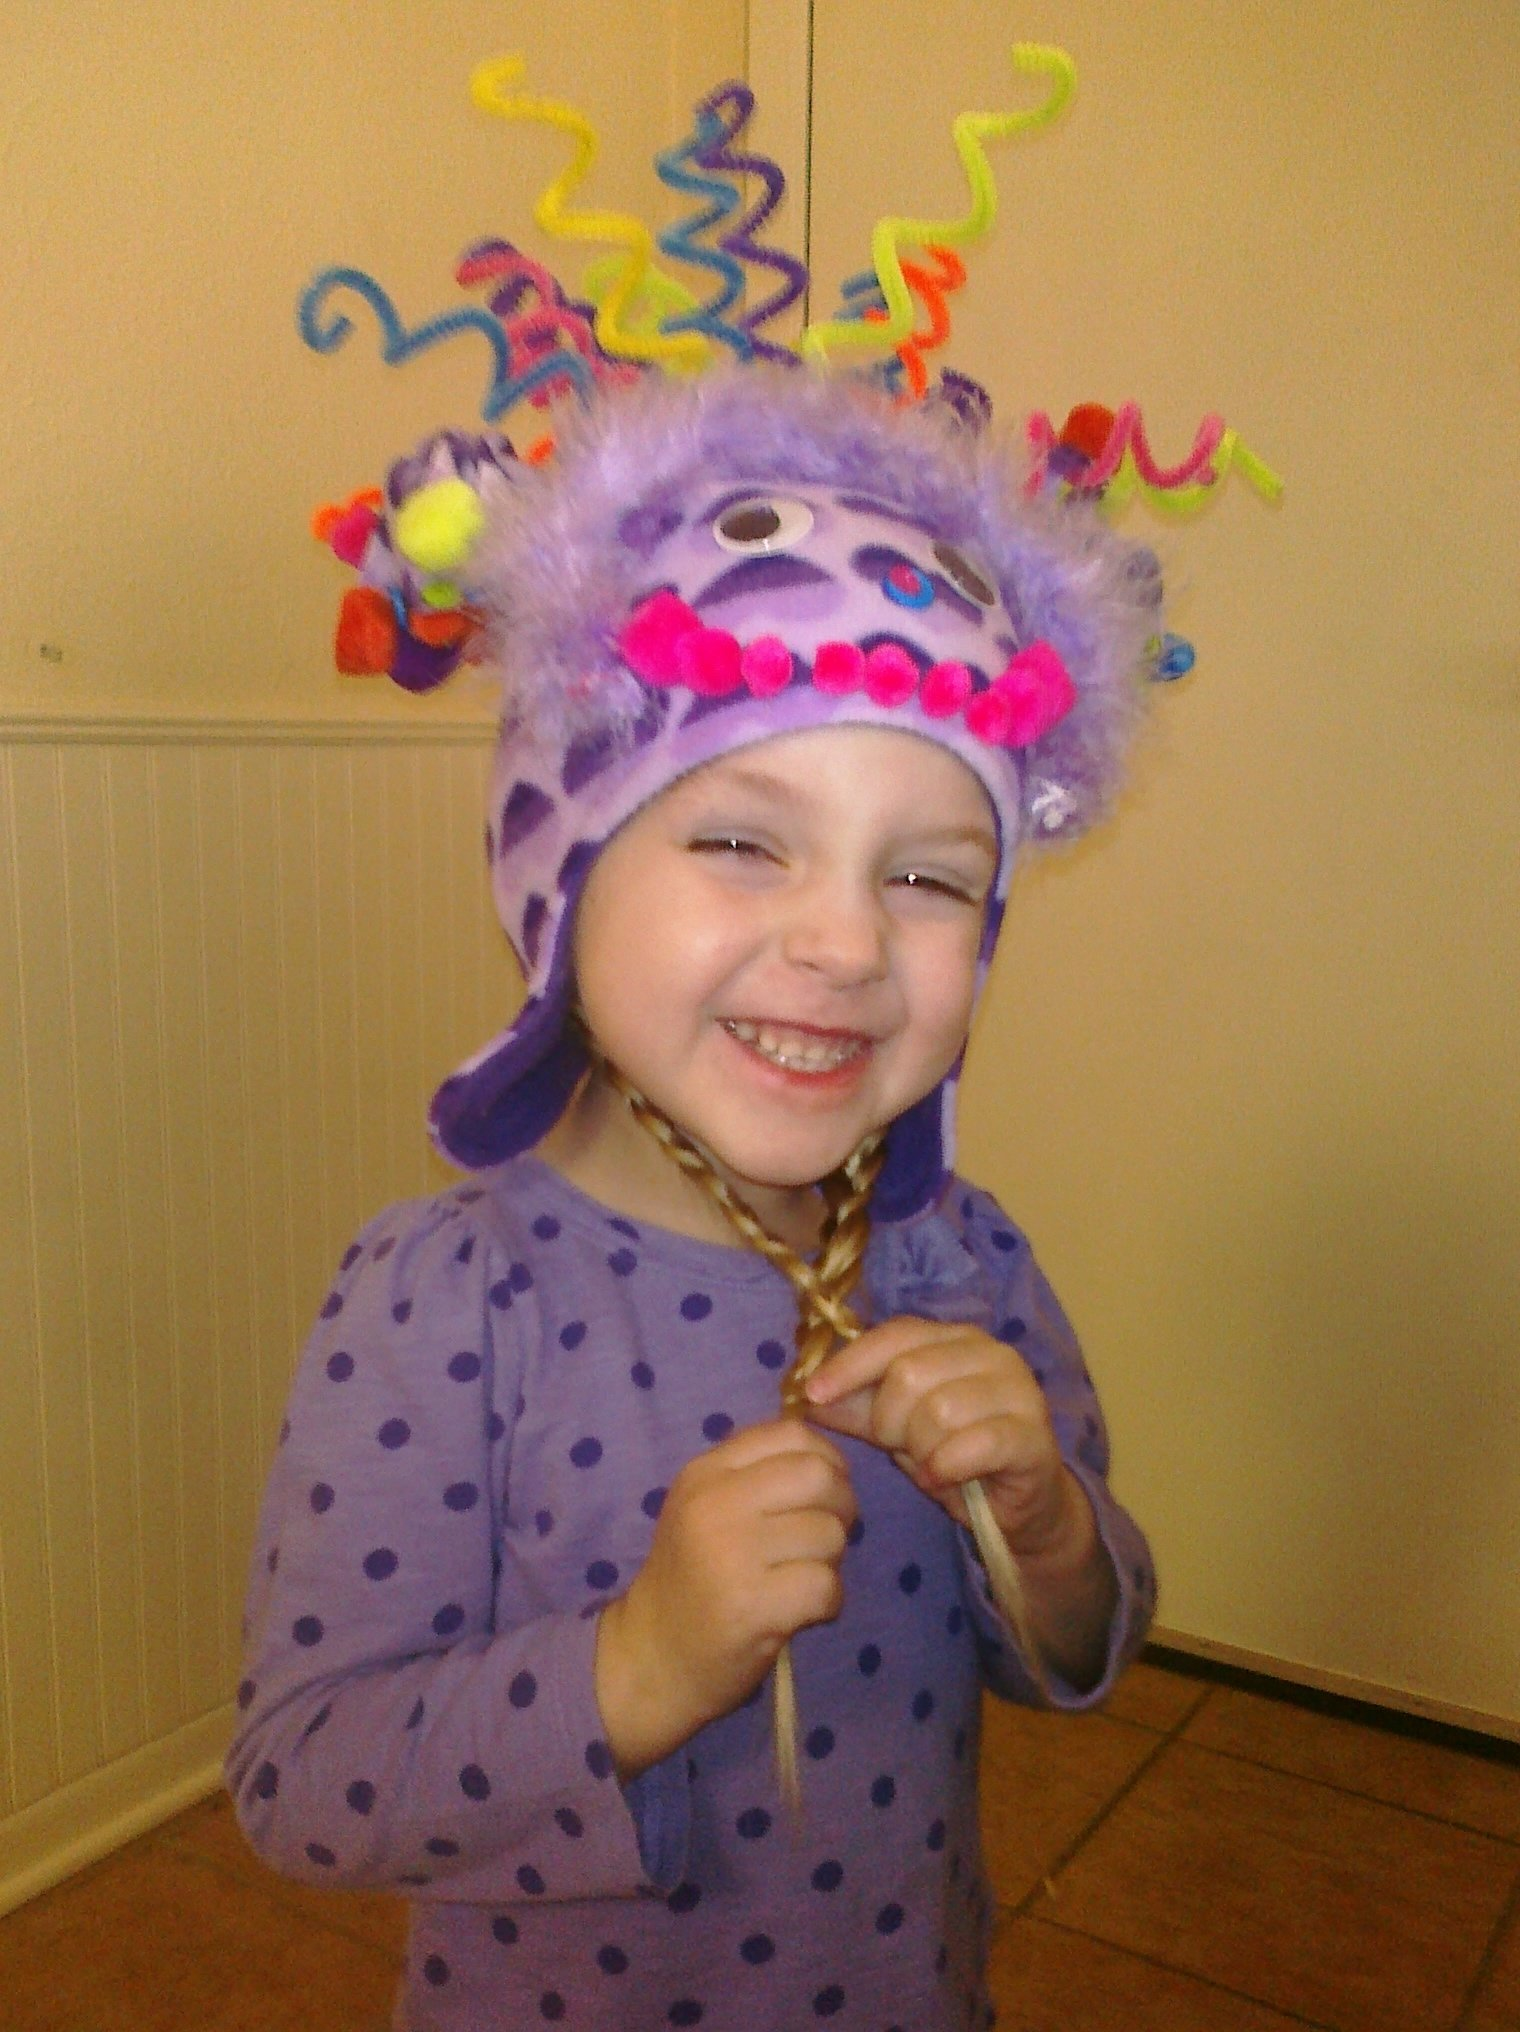 10 Great Crazy Hat Day Ideas For Kids crazy hat for the girls pinterest silly hats wacky 1 2020